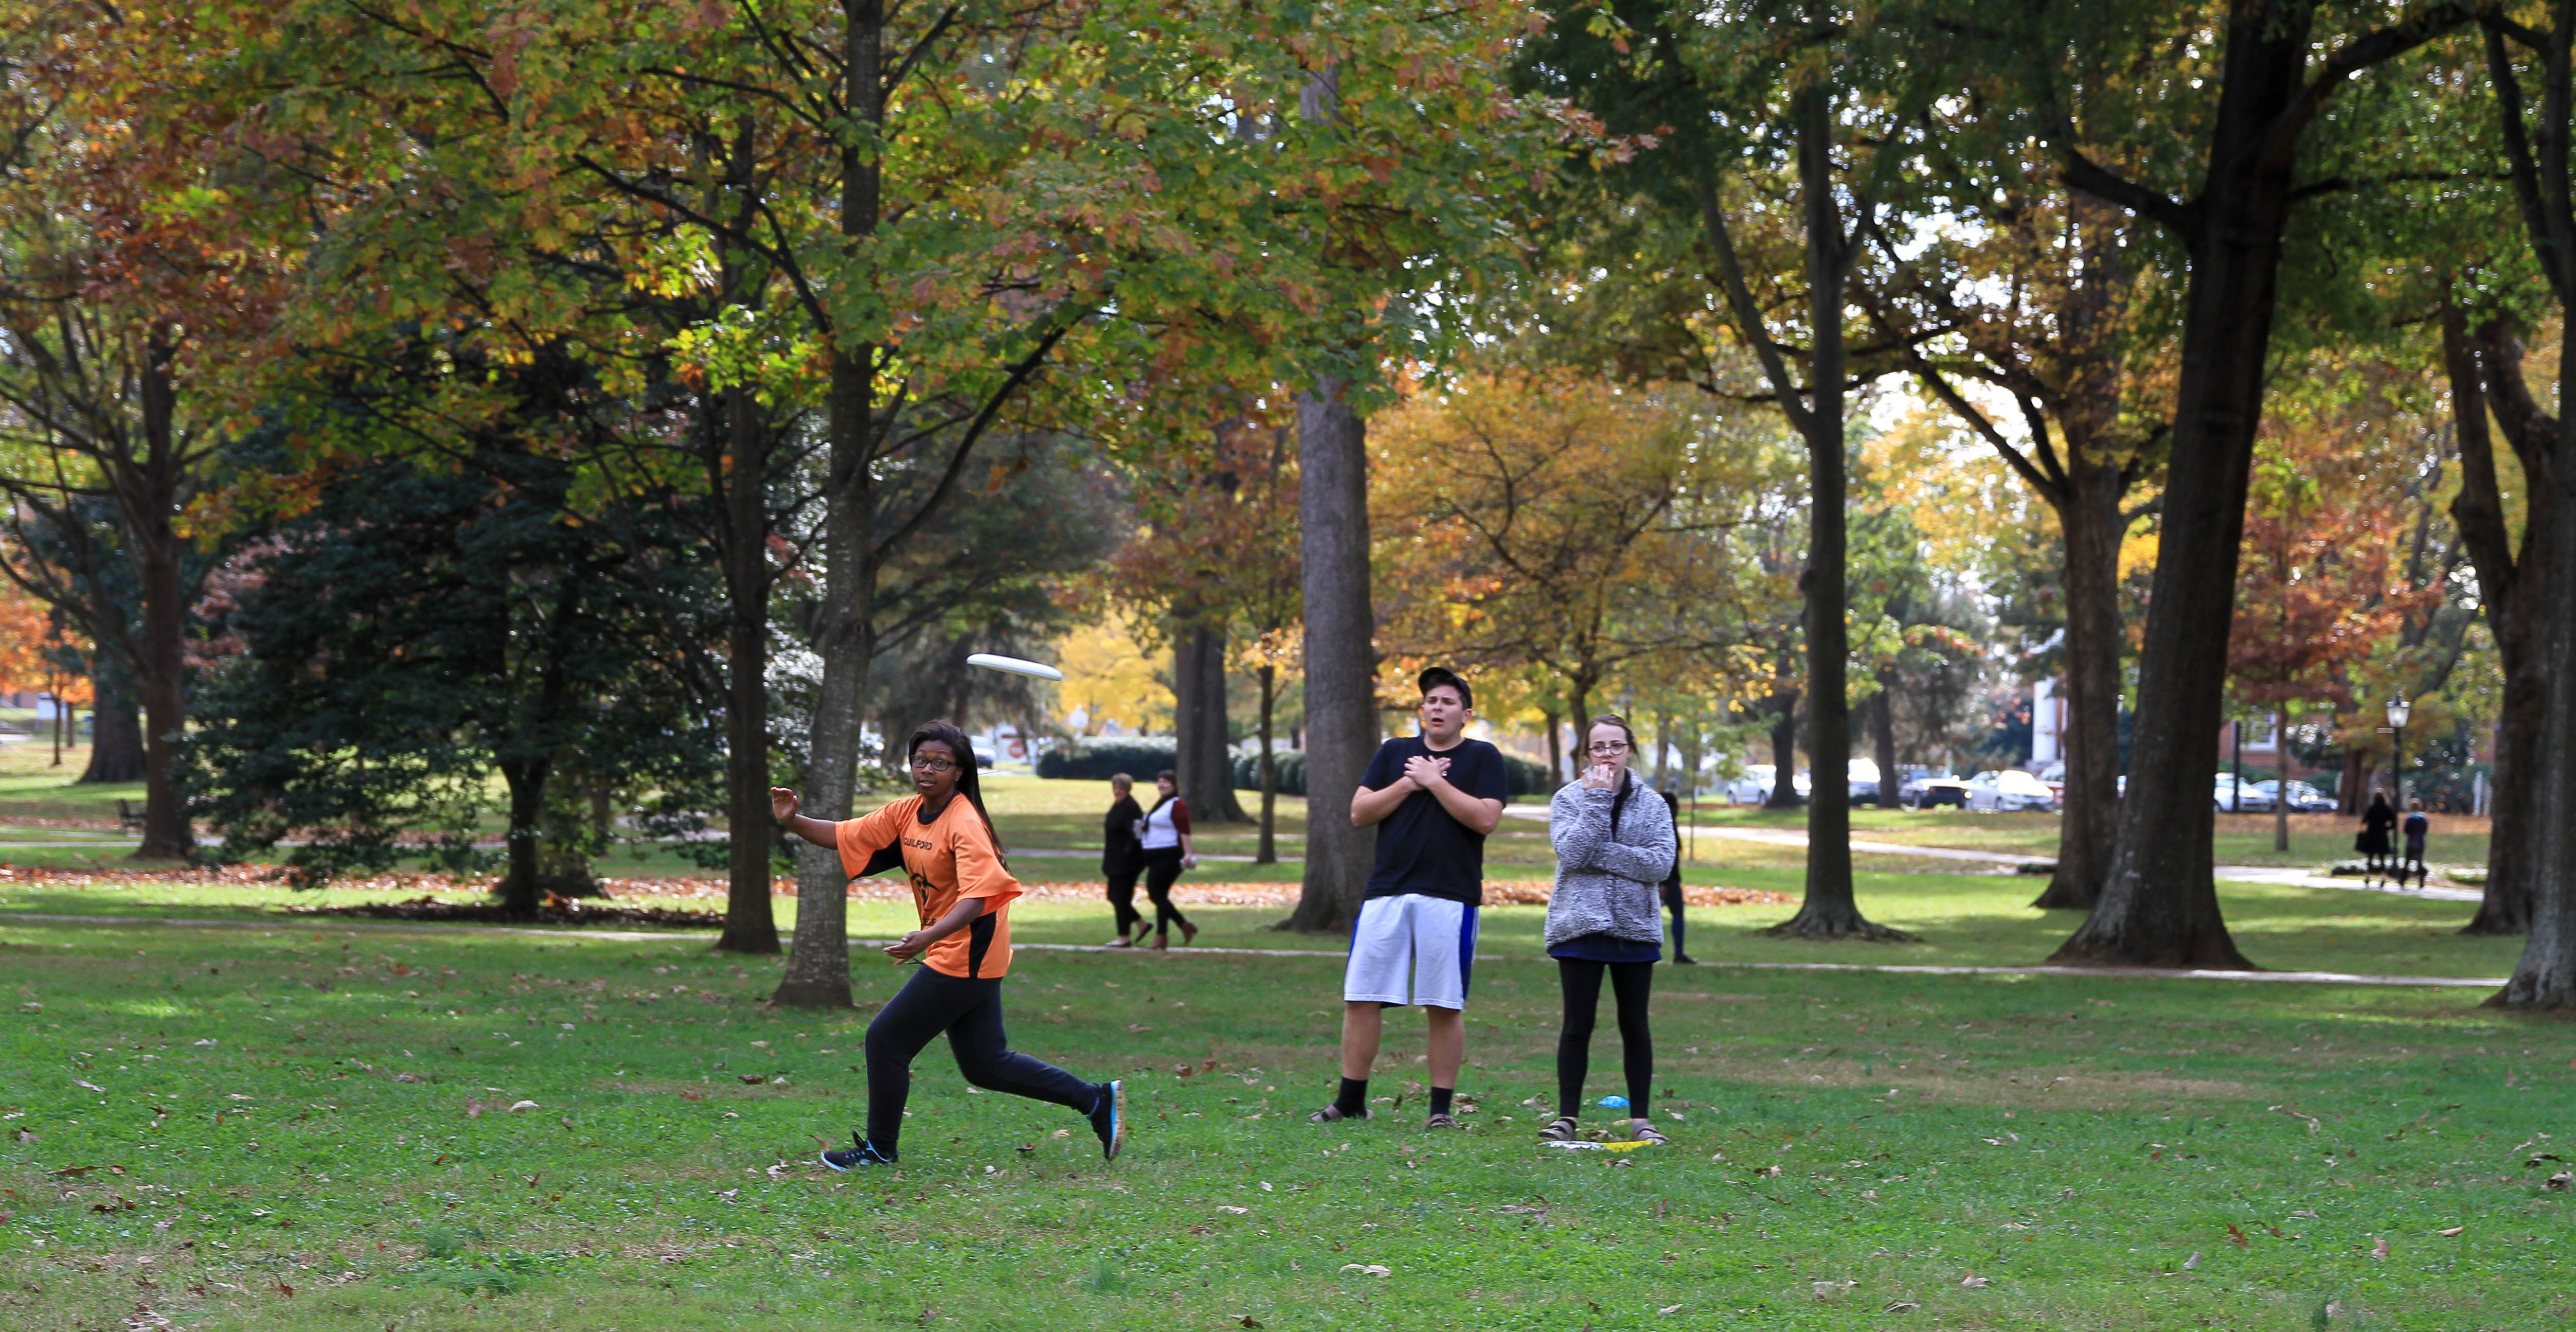 Ultimate Frisbee was popular with students at the Sport Spectacular.